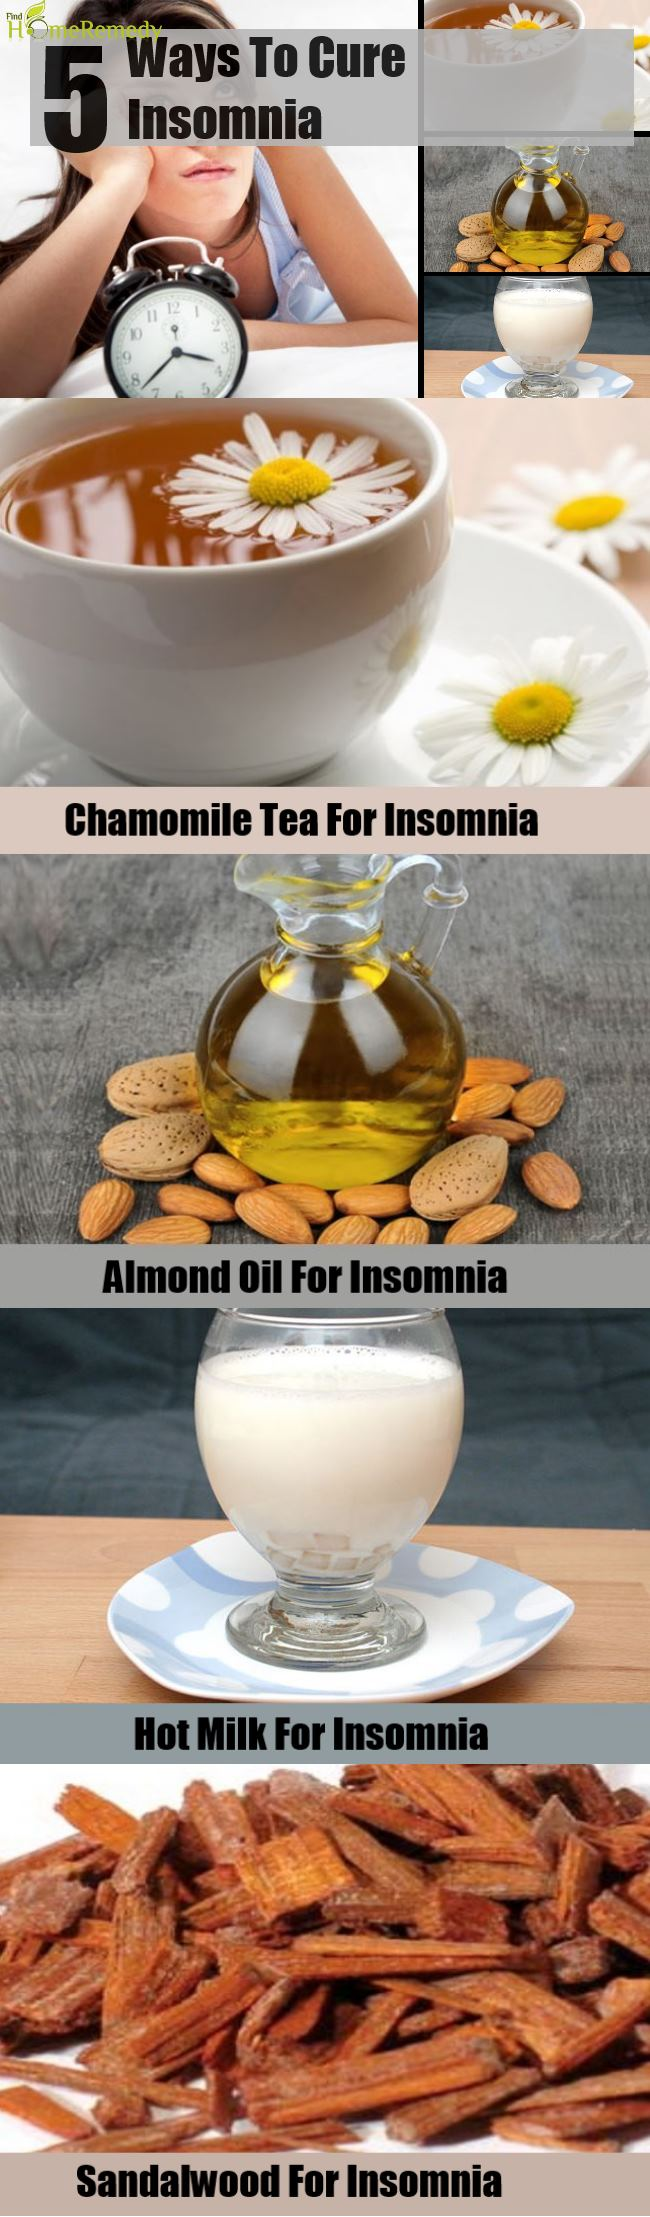 5 Natural Ways To Cure Insomnia